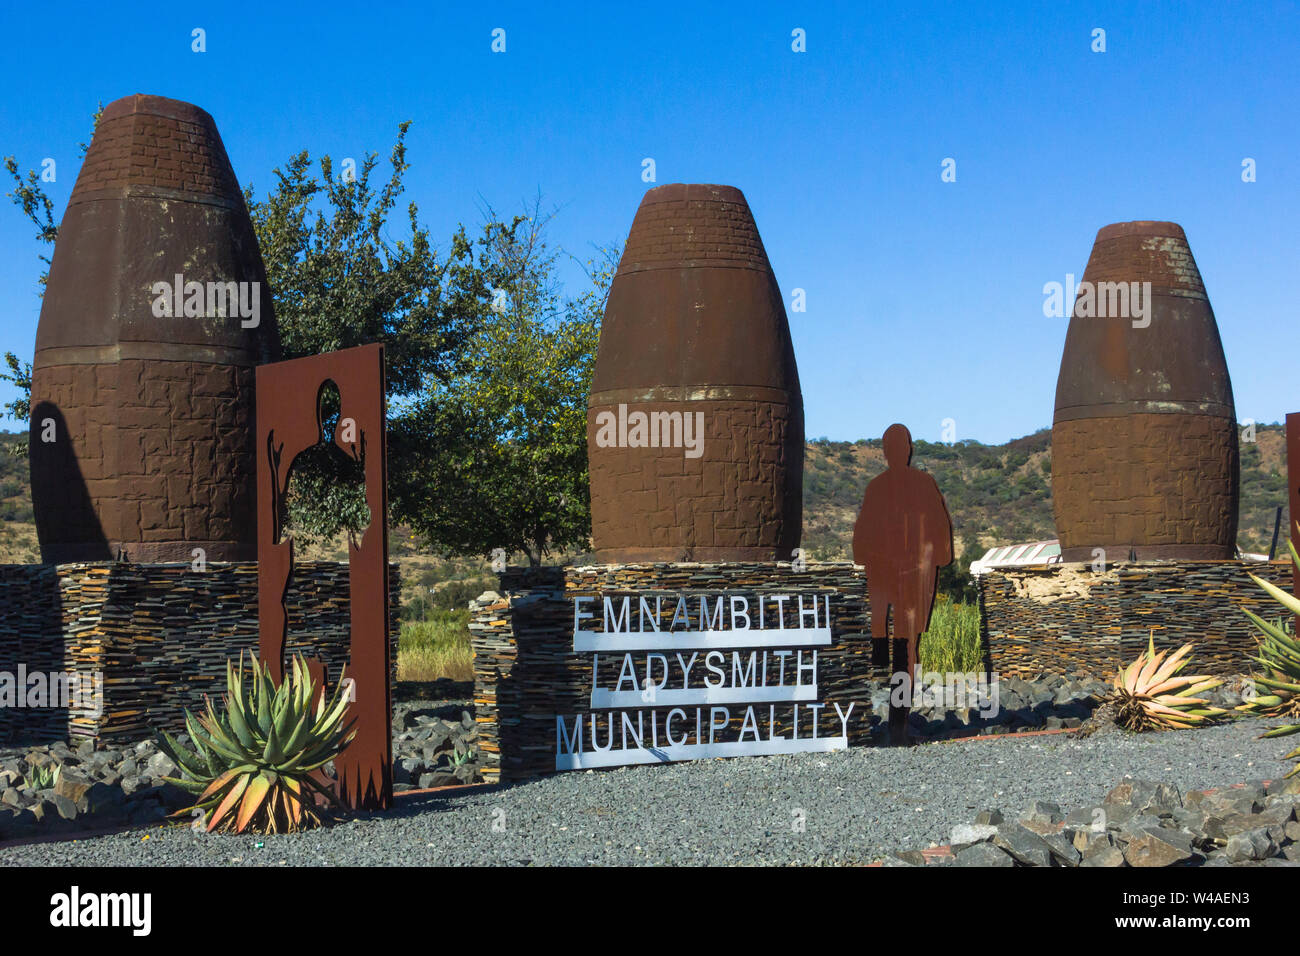 Emnambithi Ladysmith municipality welcome metal sign at the entrance to the town in Kwazulu Natal, South Africa Stock Photo